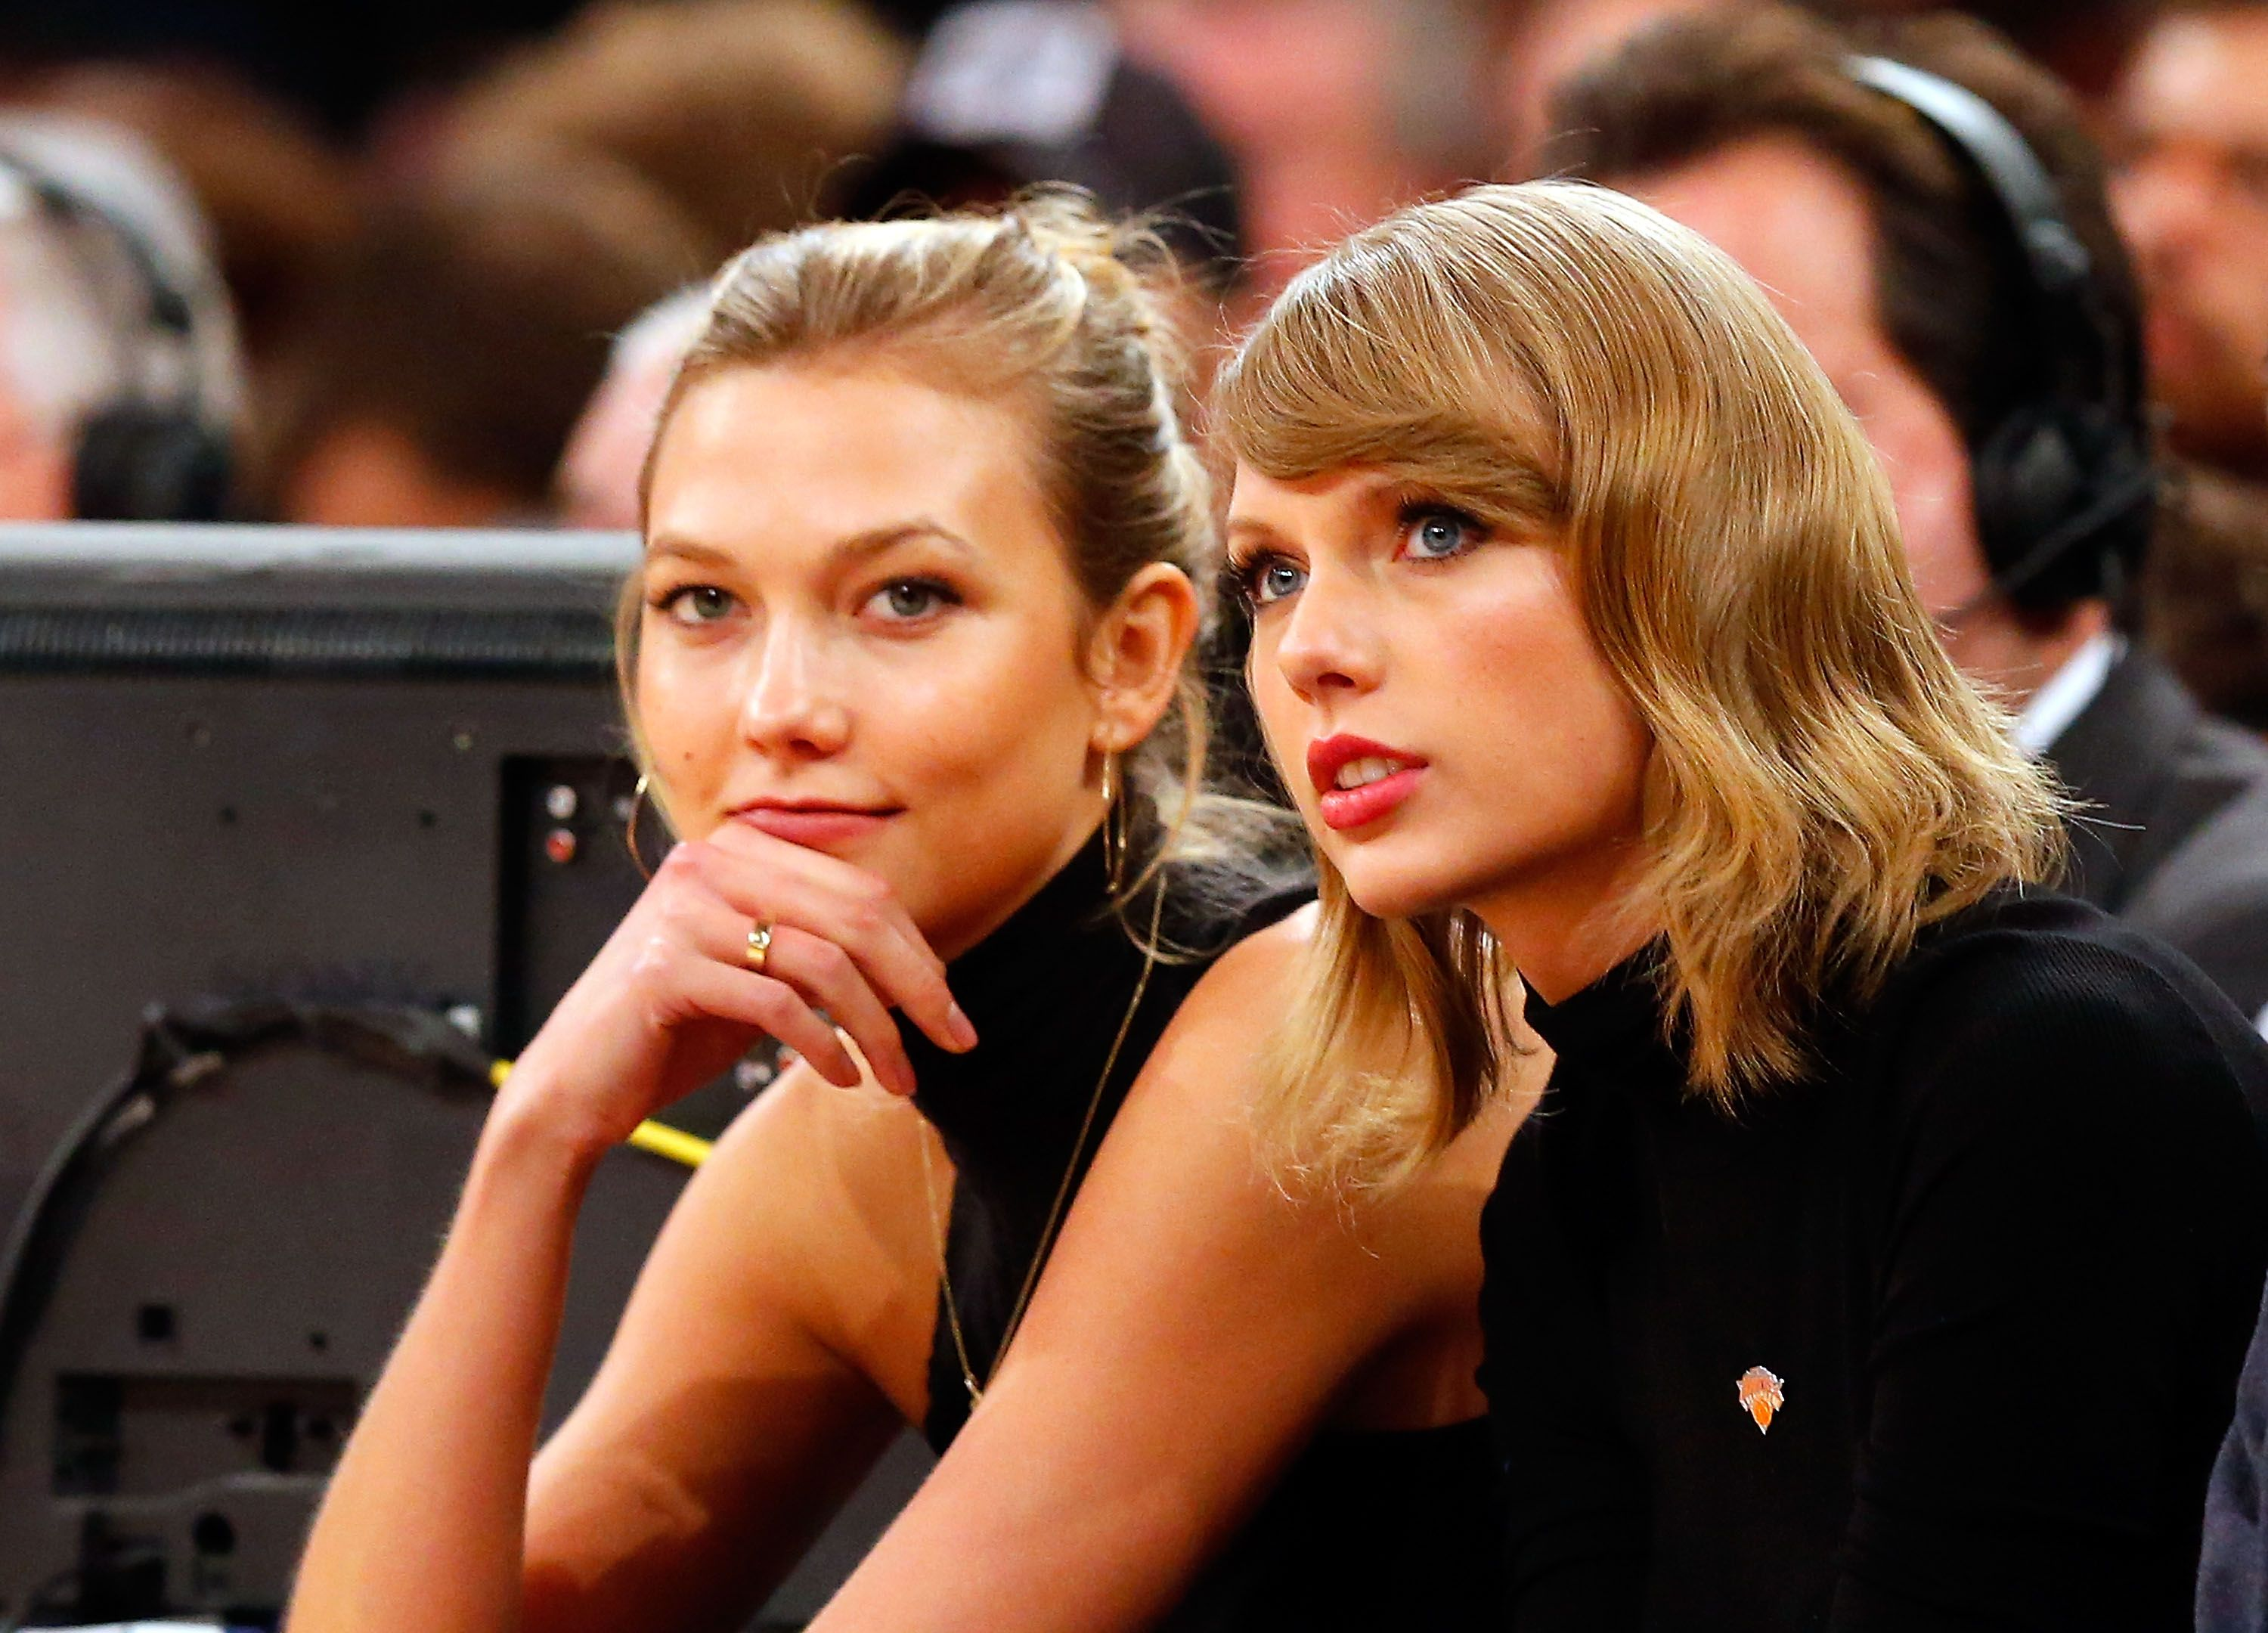 Karlie Kloss Omits Taylor Swift From Best Friend List Karlie On Not Talking About Joshua Kushner